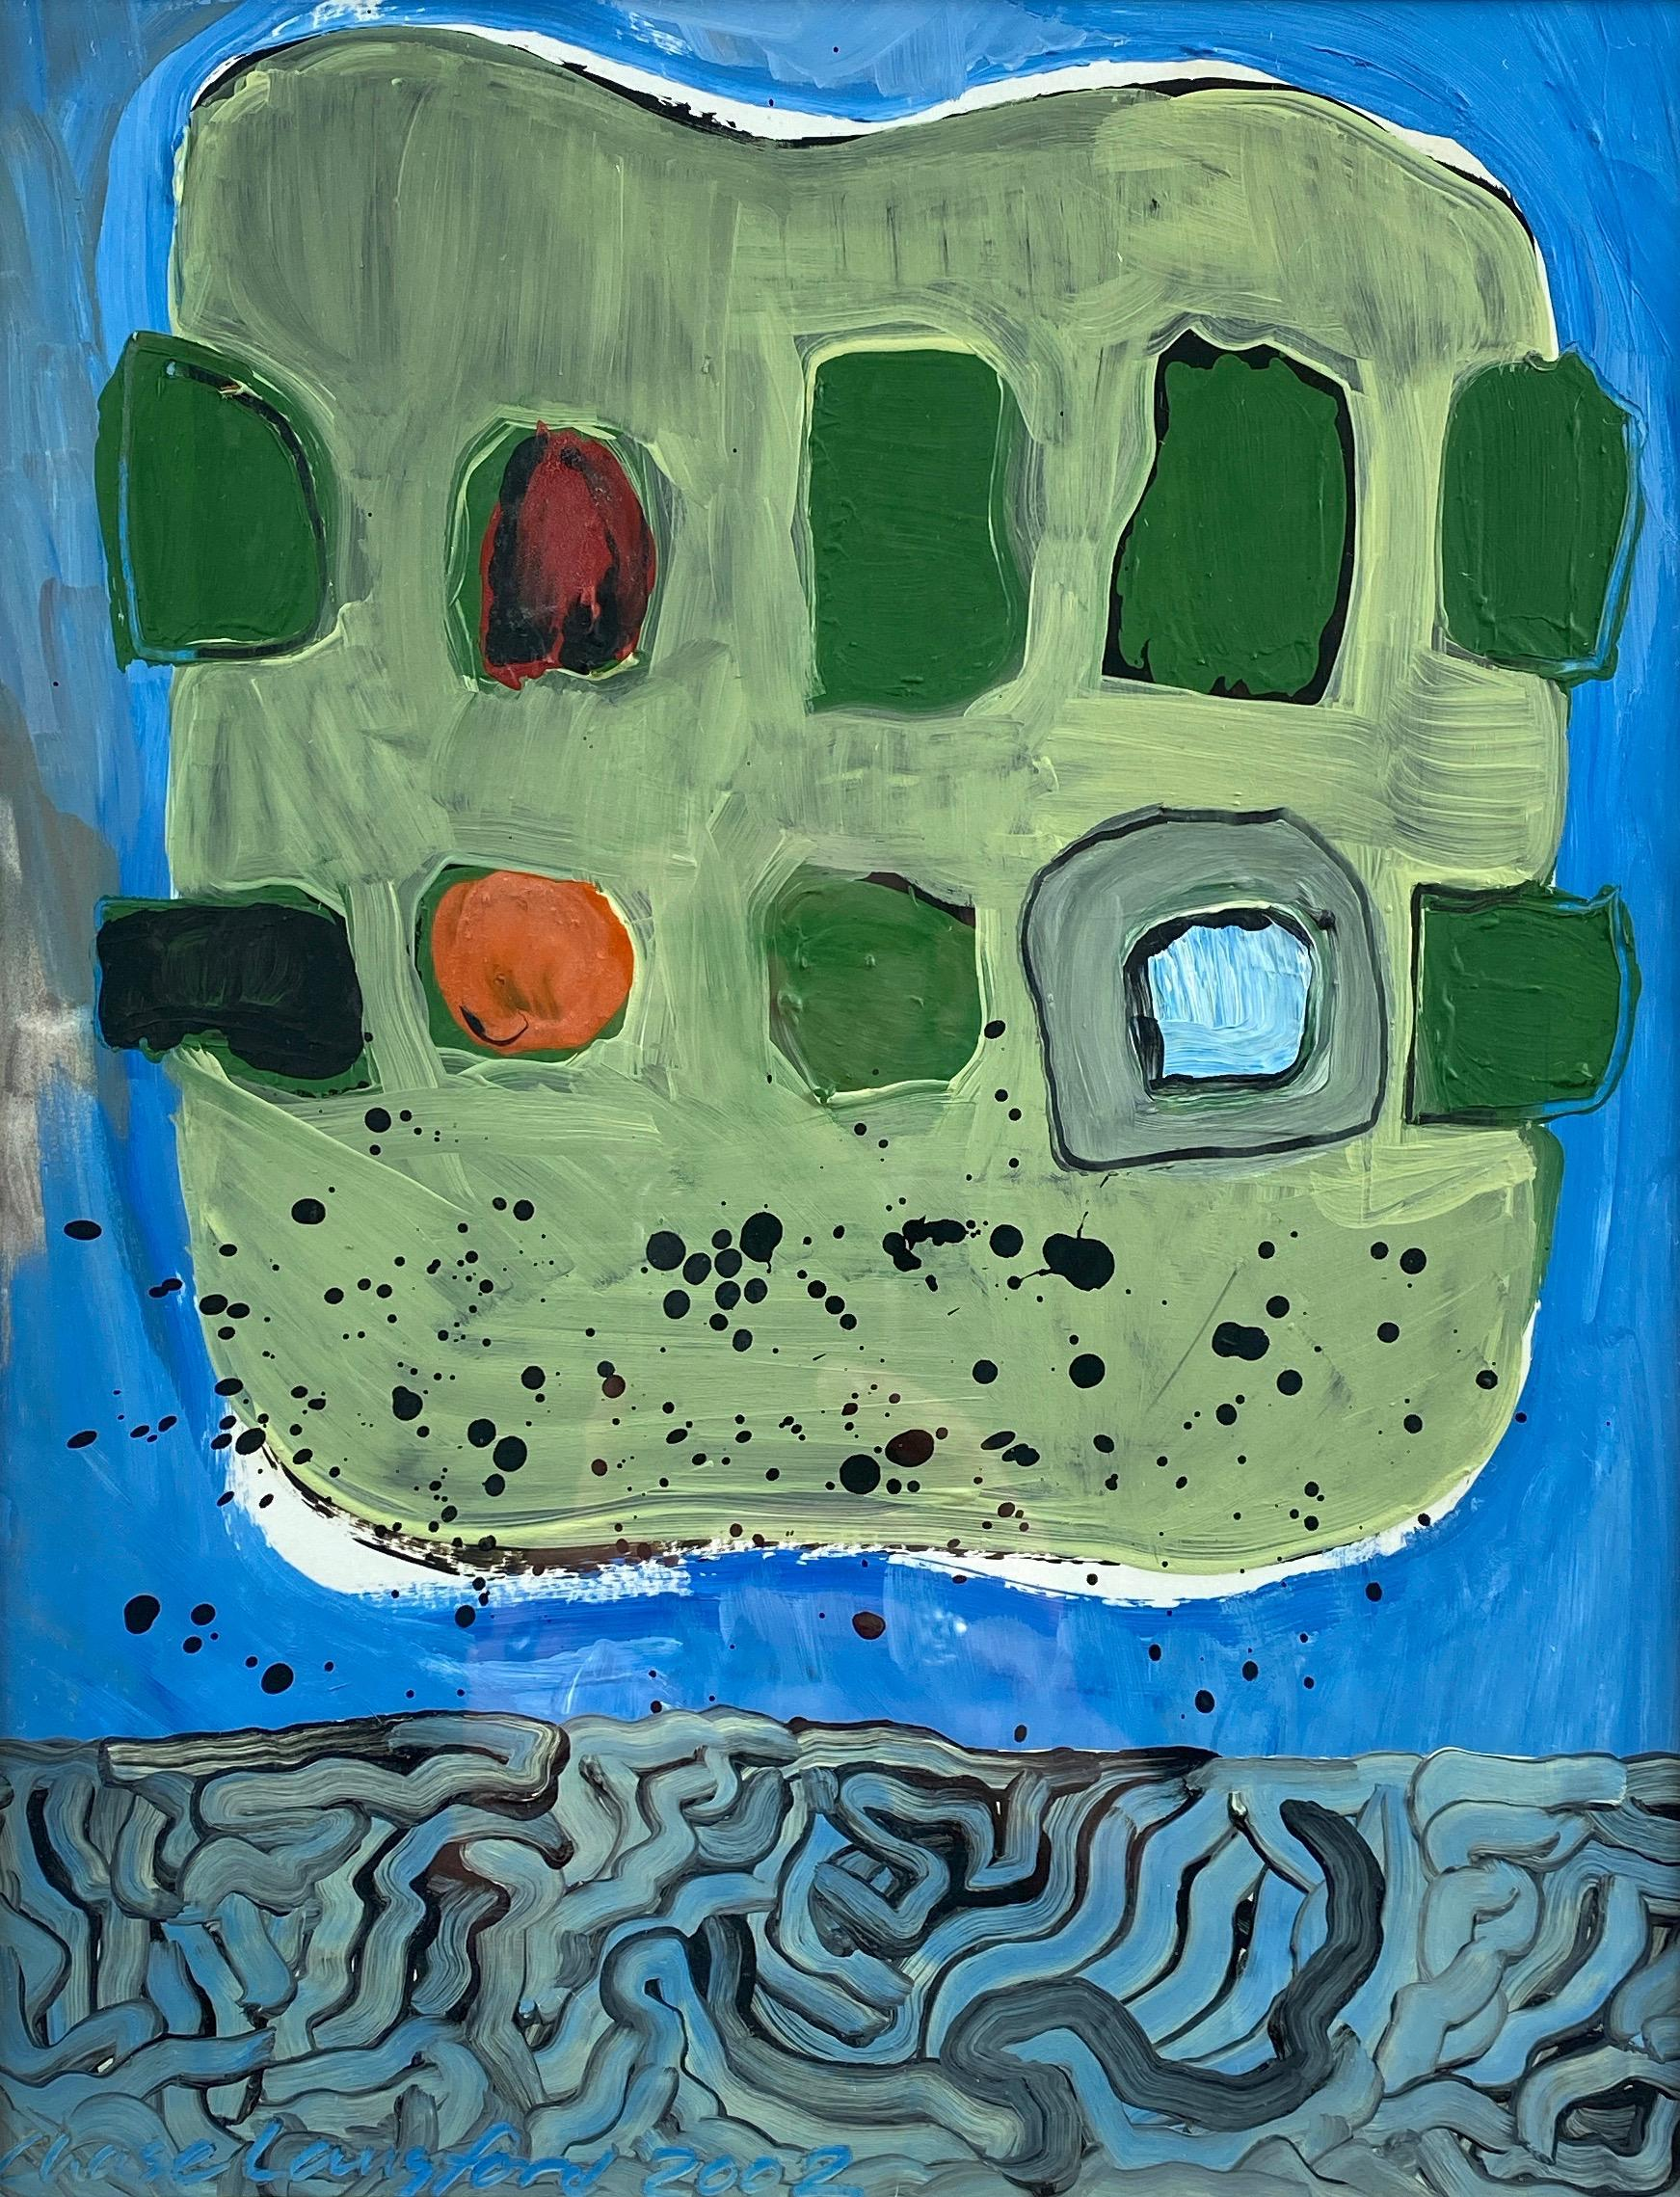 """Chase Langford """"Untitled"""", Abstract Expressionist Oil Painting, 2002"""